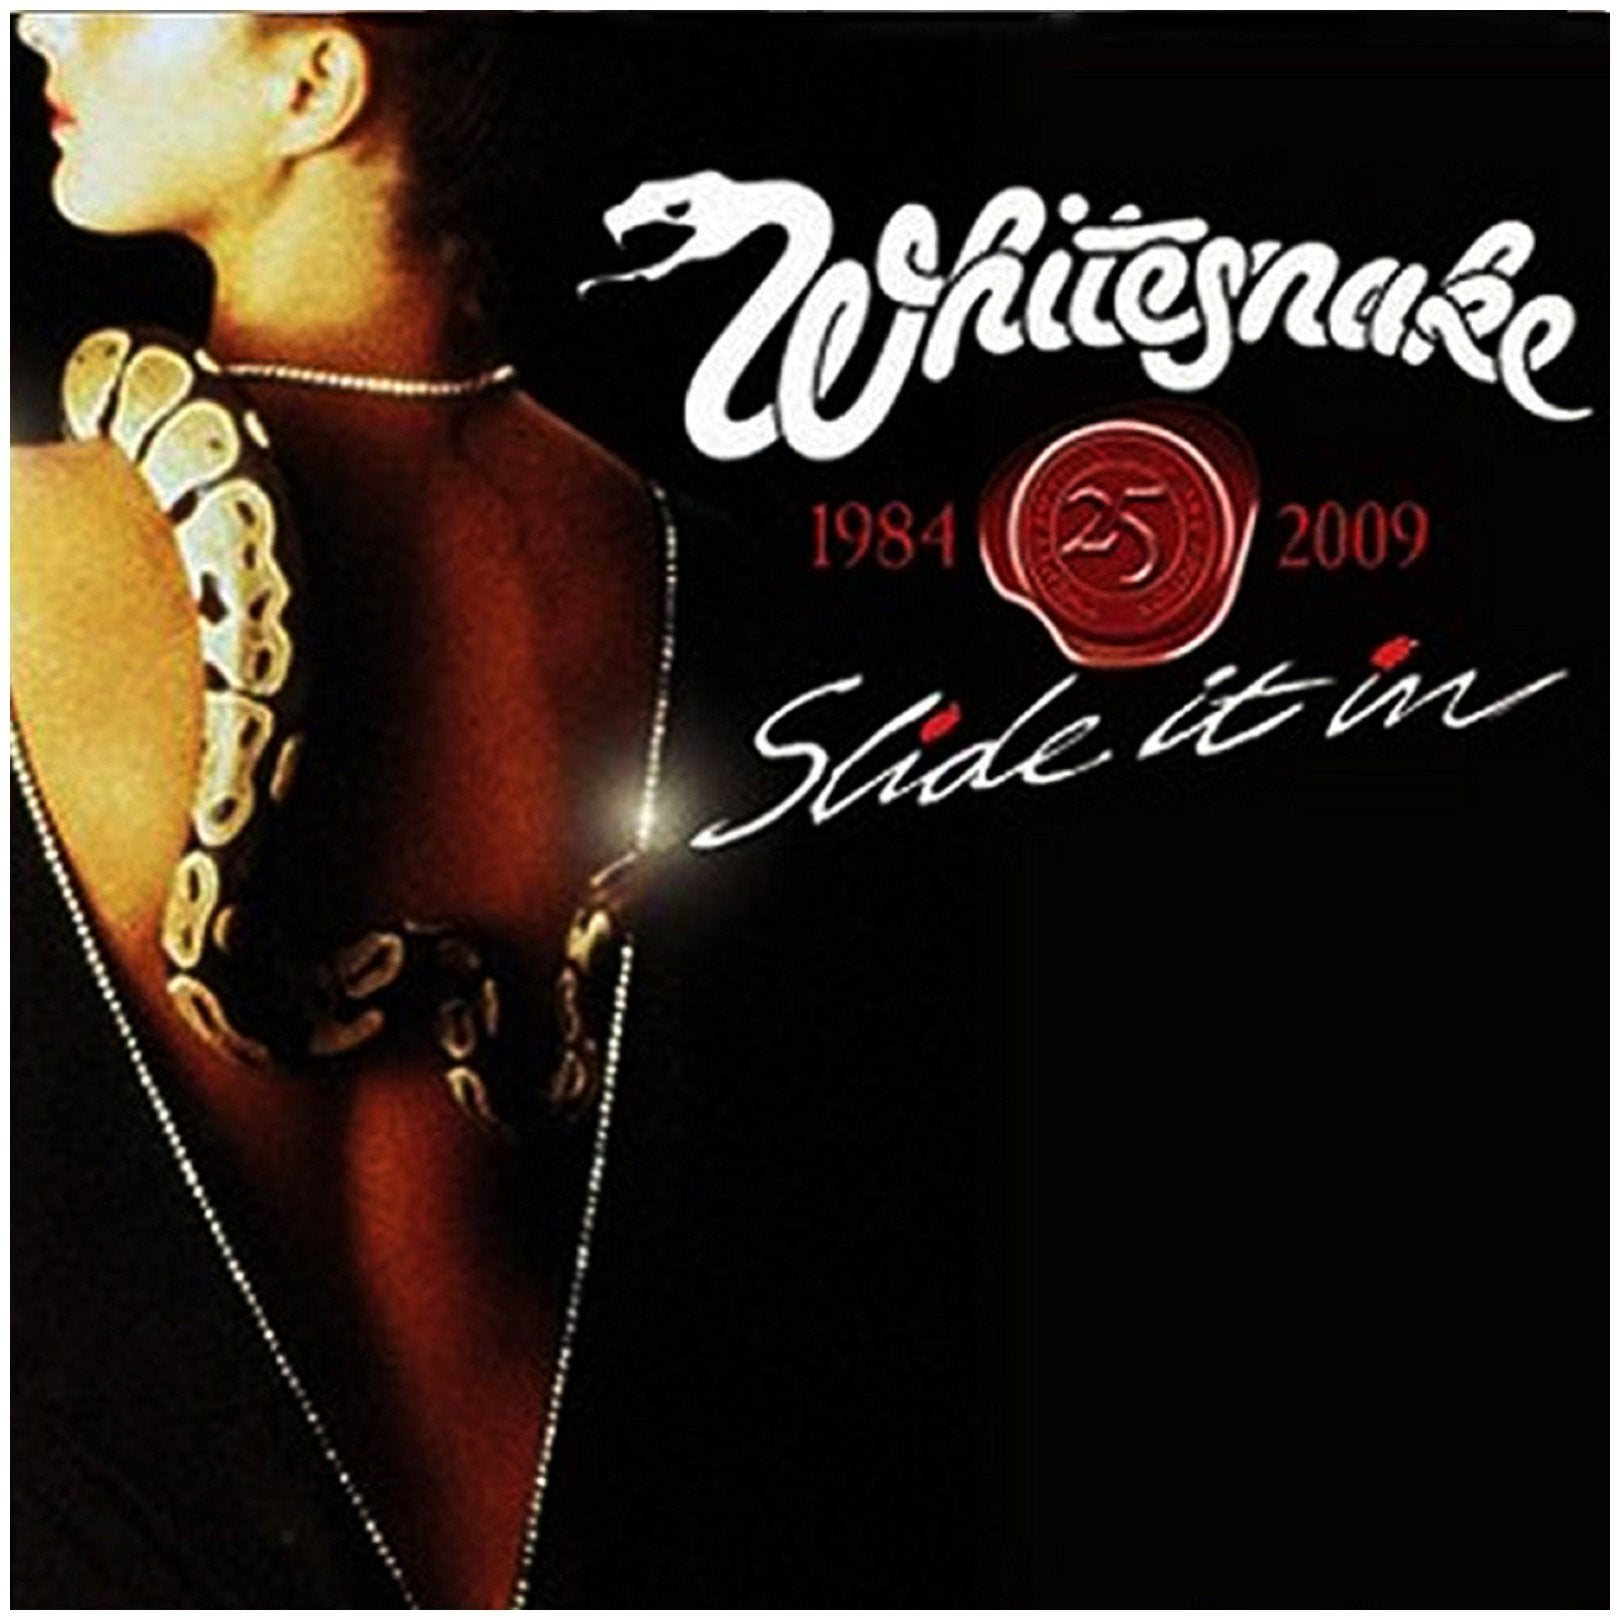 Whitesnake - Whitesnake - Slide It In - 25th Anniversary Cd + Dvd